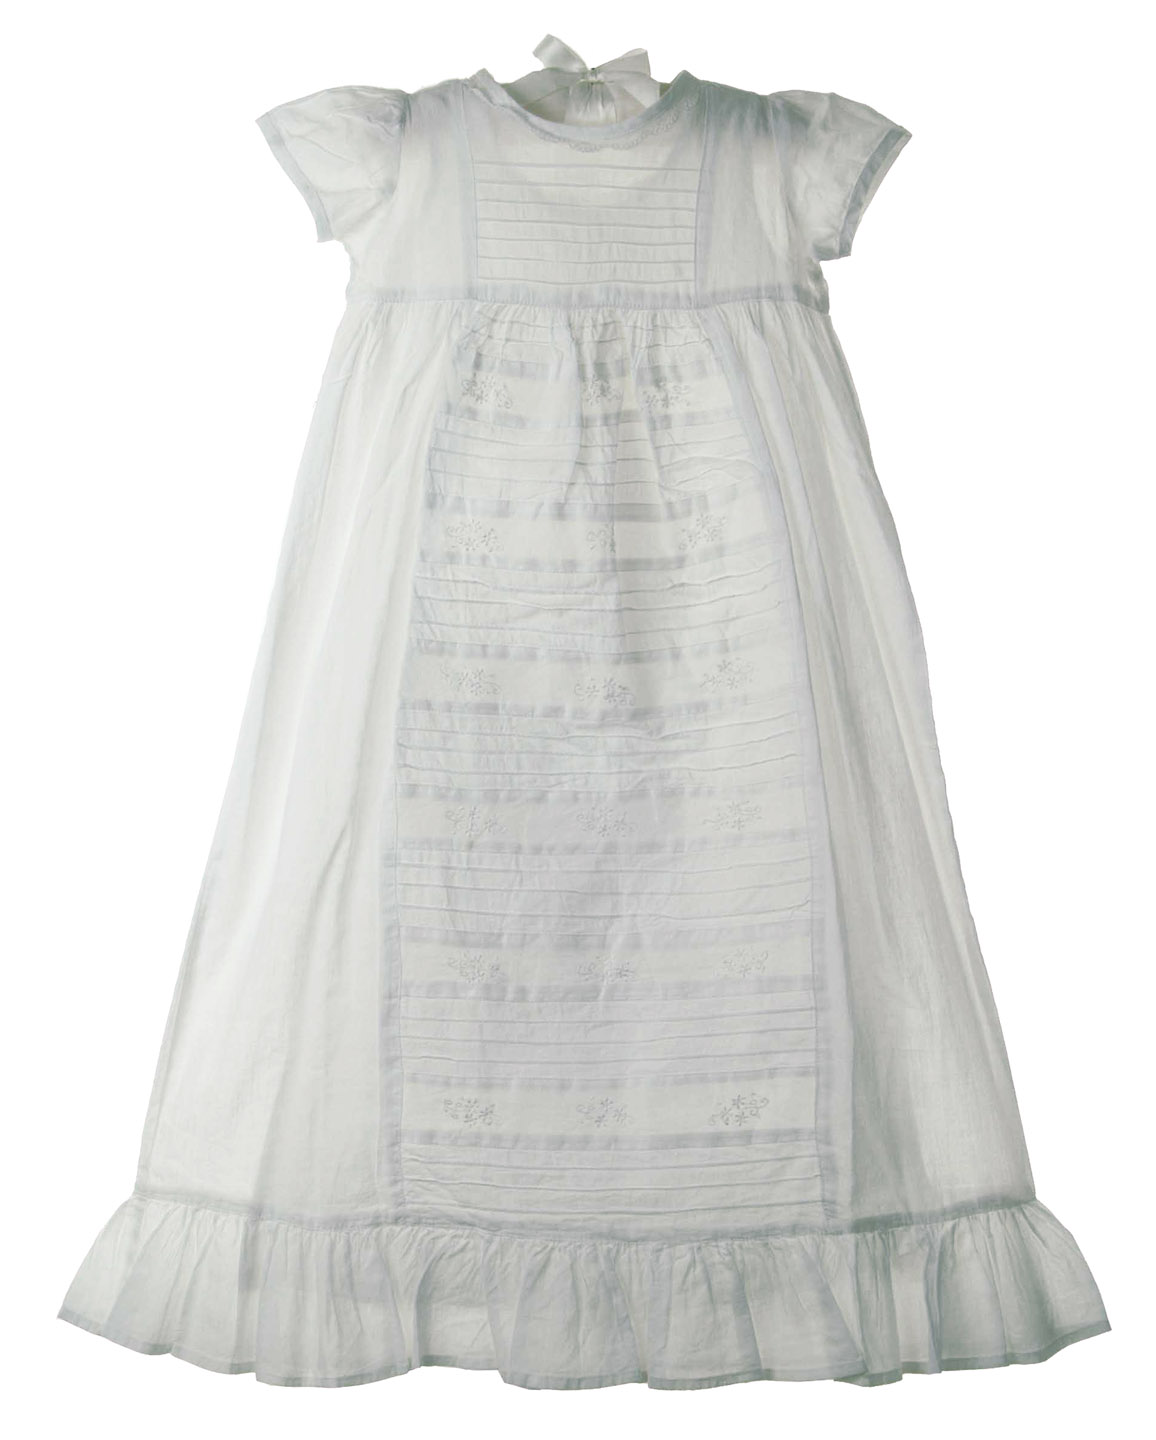 vintage style white cotton christening gown with pin tucks and ...